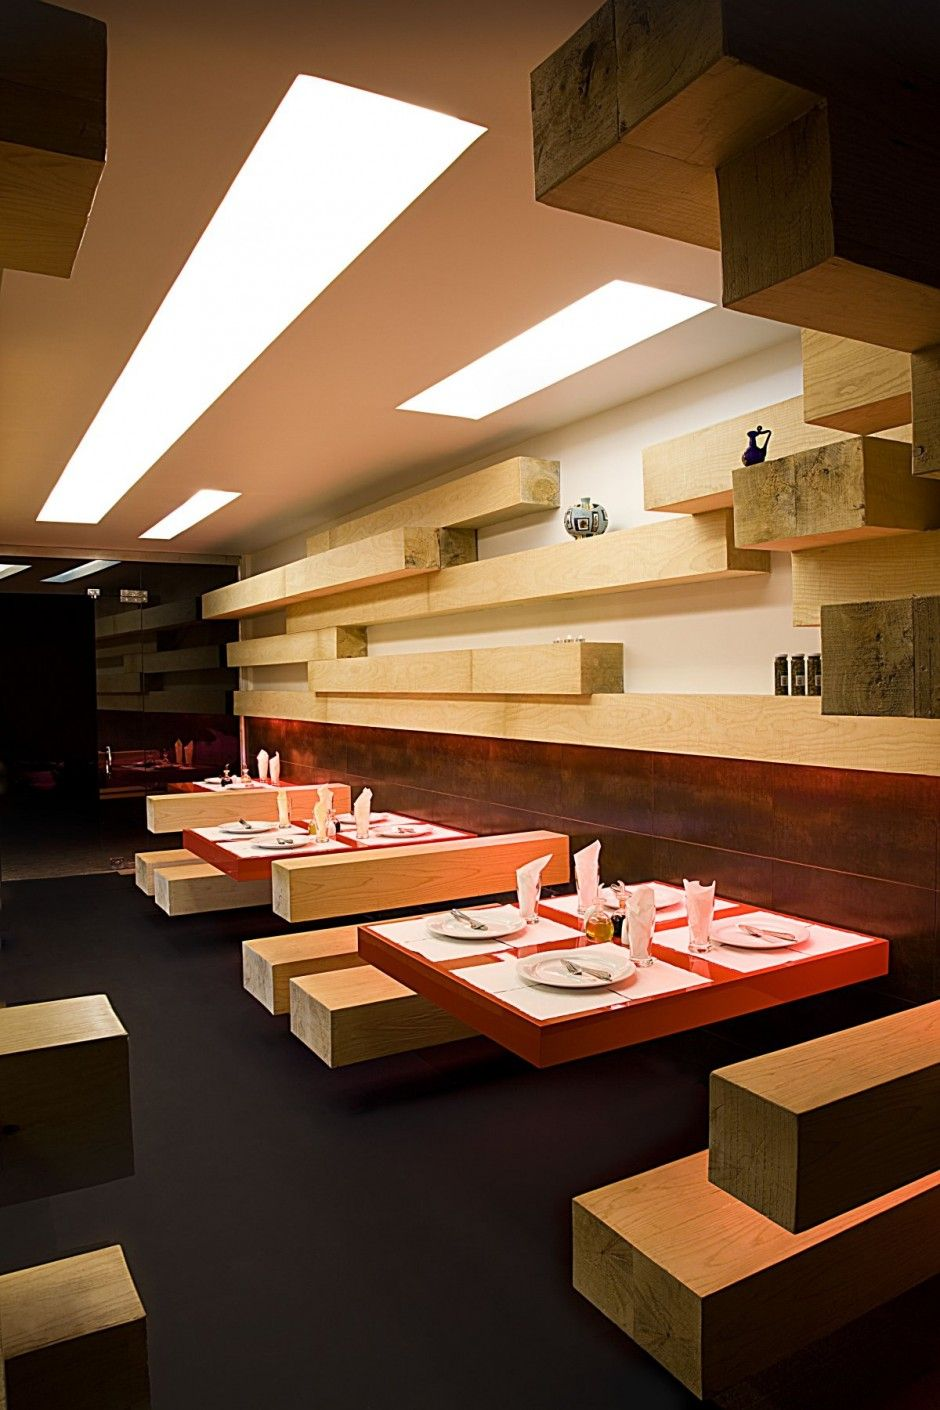 Restaurant Interior Design Ideas art decor home designs marvelous asian restaurant interior wwwstepinit Ator Restaurant Design By Expose Architecture Architecture Interior Design Ideas And Online Archives